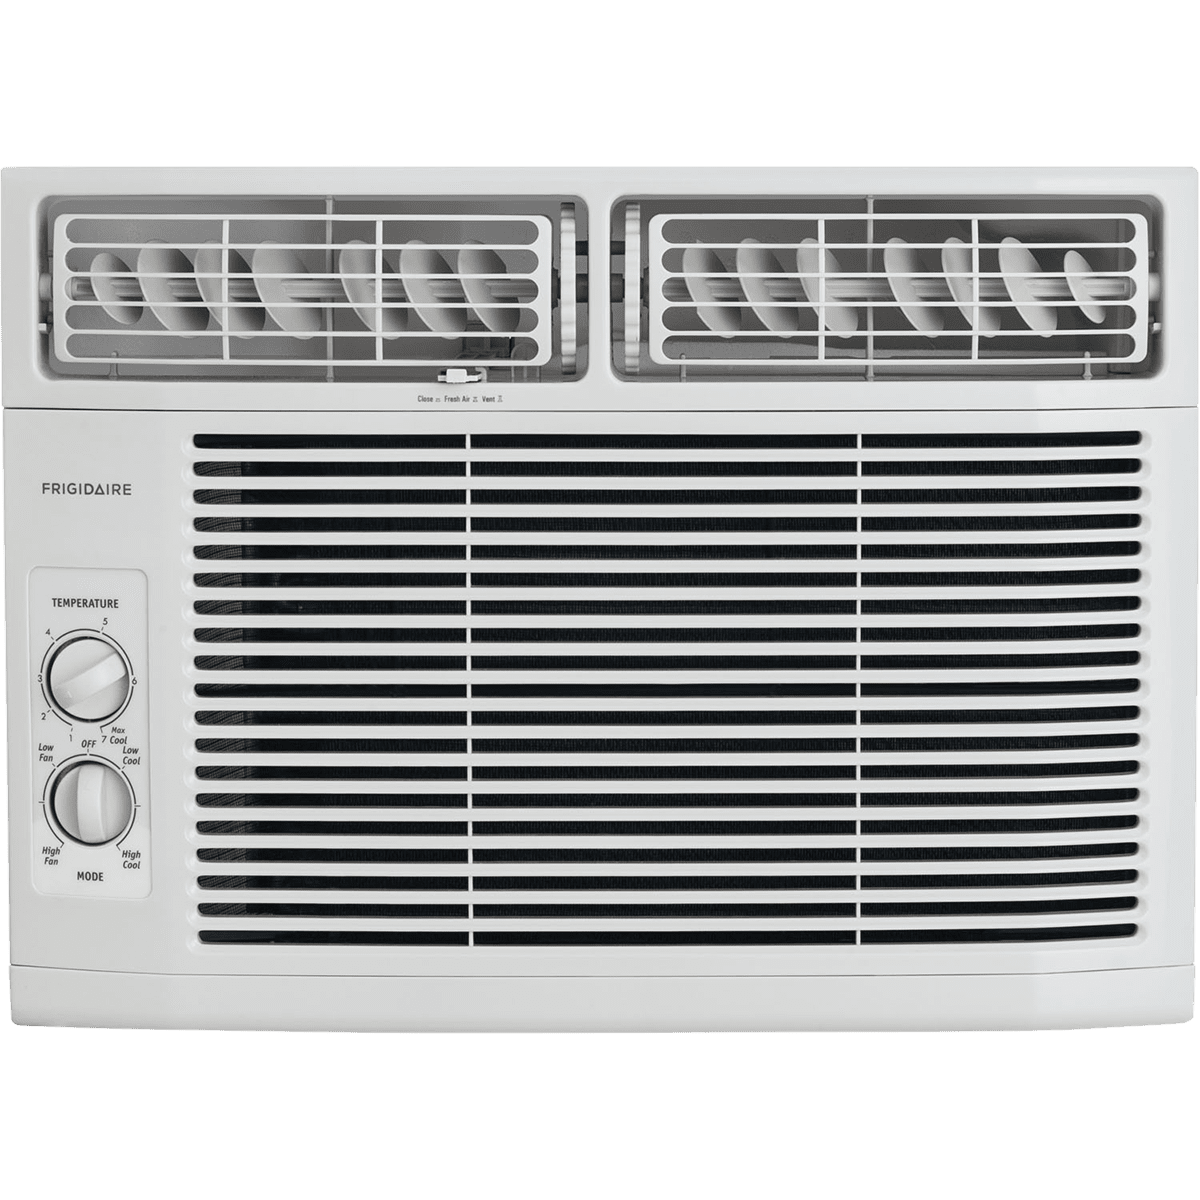 frigidaire ffra1011r1 115 v btu window air conditioner